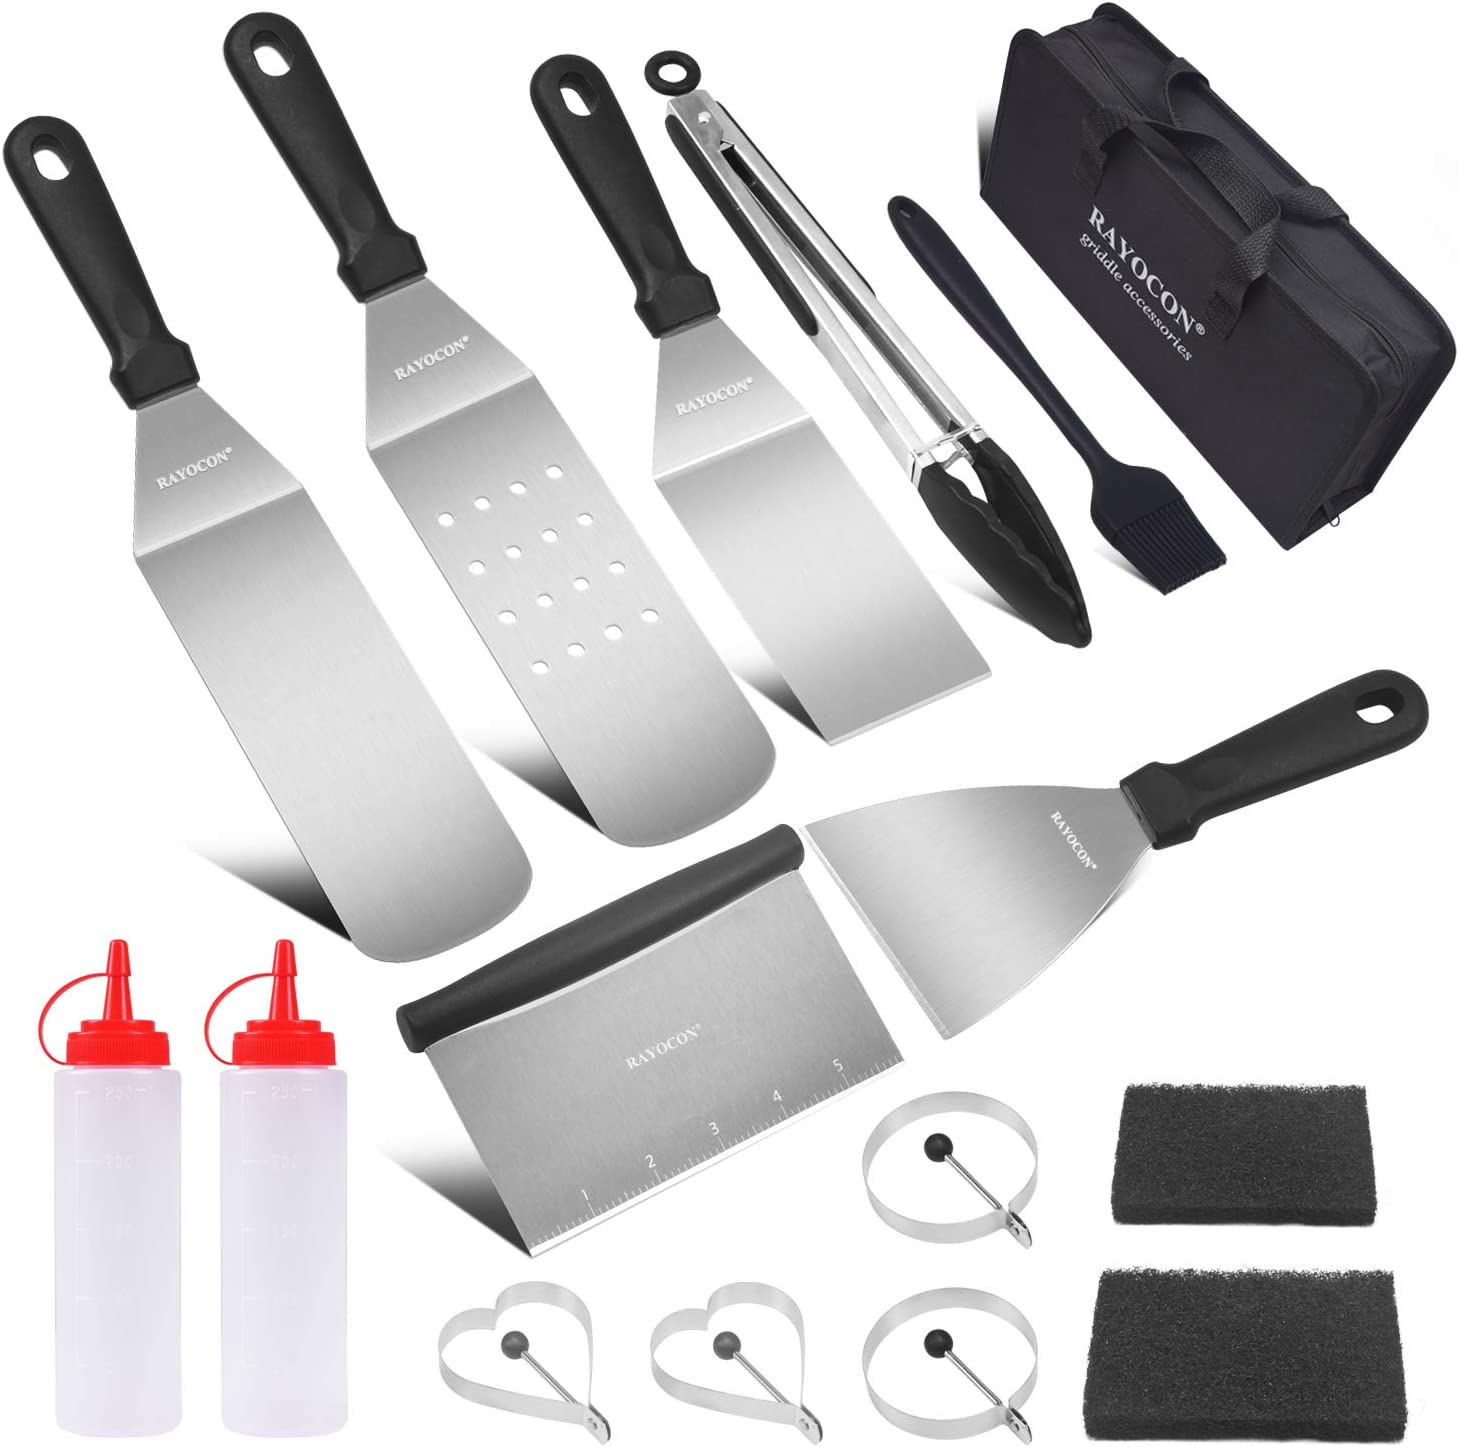 RAYOCON Griddle Accessories Kit 16 Pieces Flat Top Grill Accessories with Spatula Scraper Griddle Tools Utensils Set for Outdoor BBQ,Teppanyaki,Cooking Barbecue and Camping (14 inch)